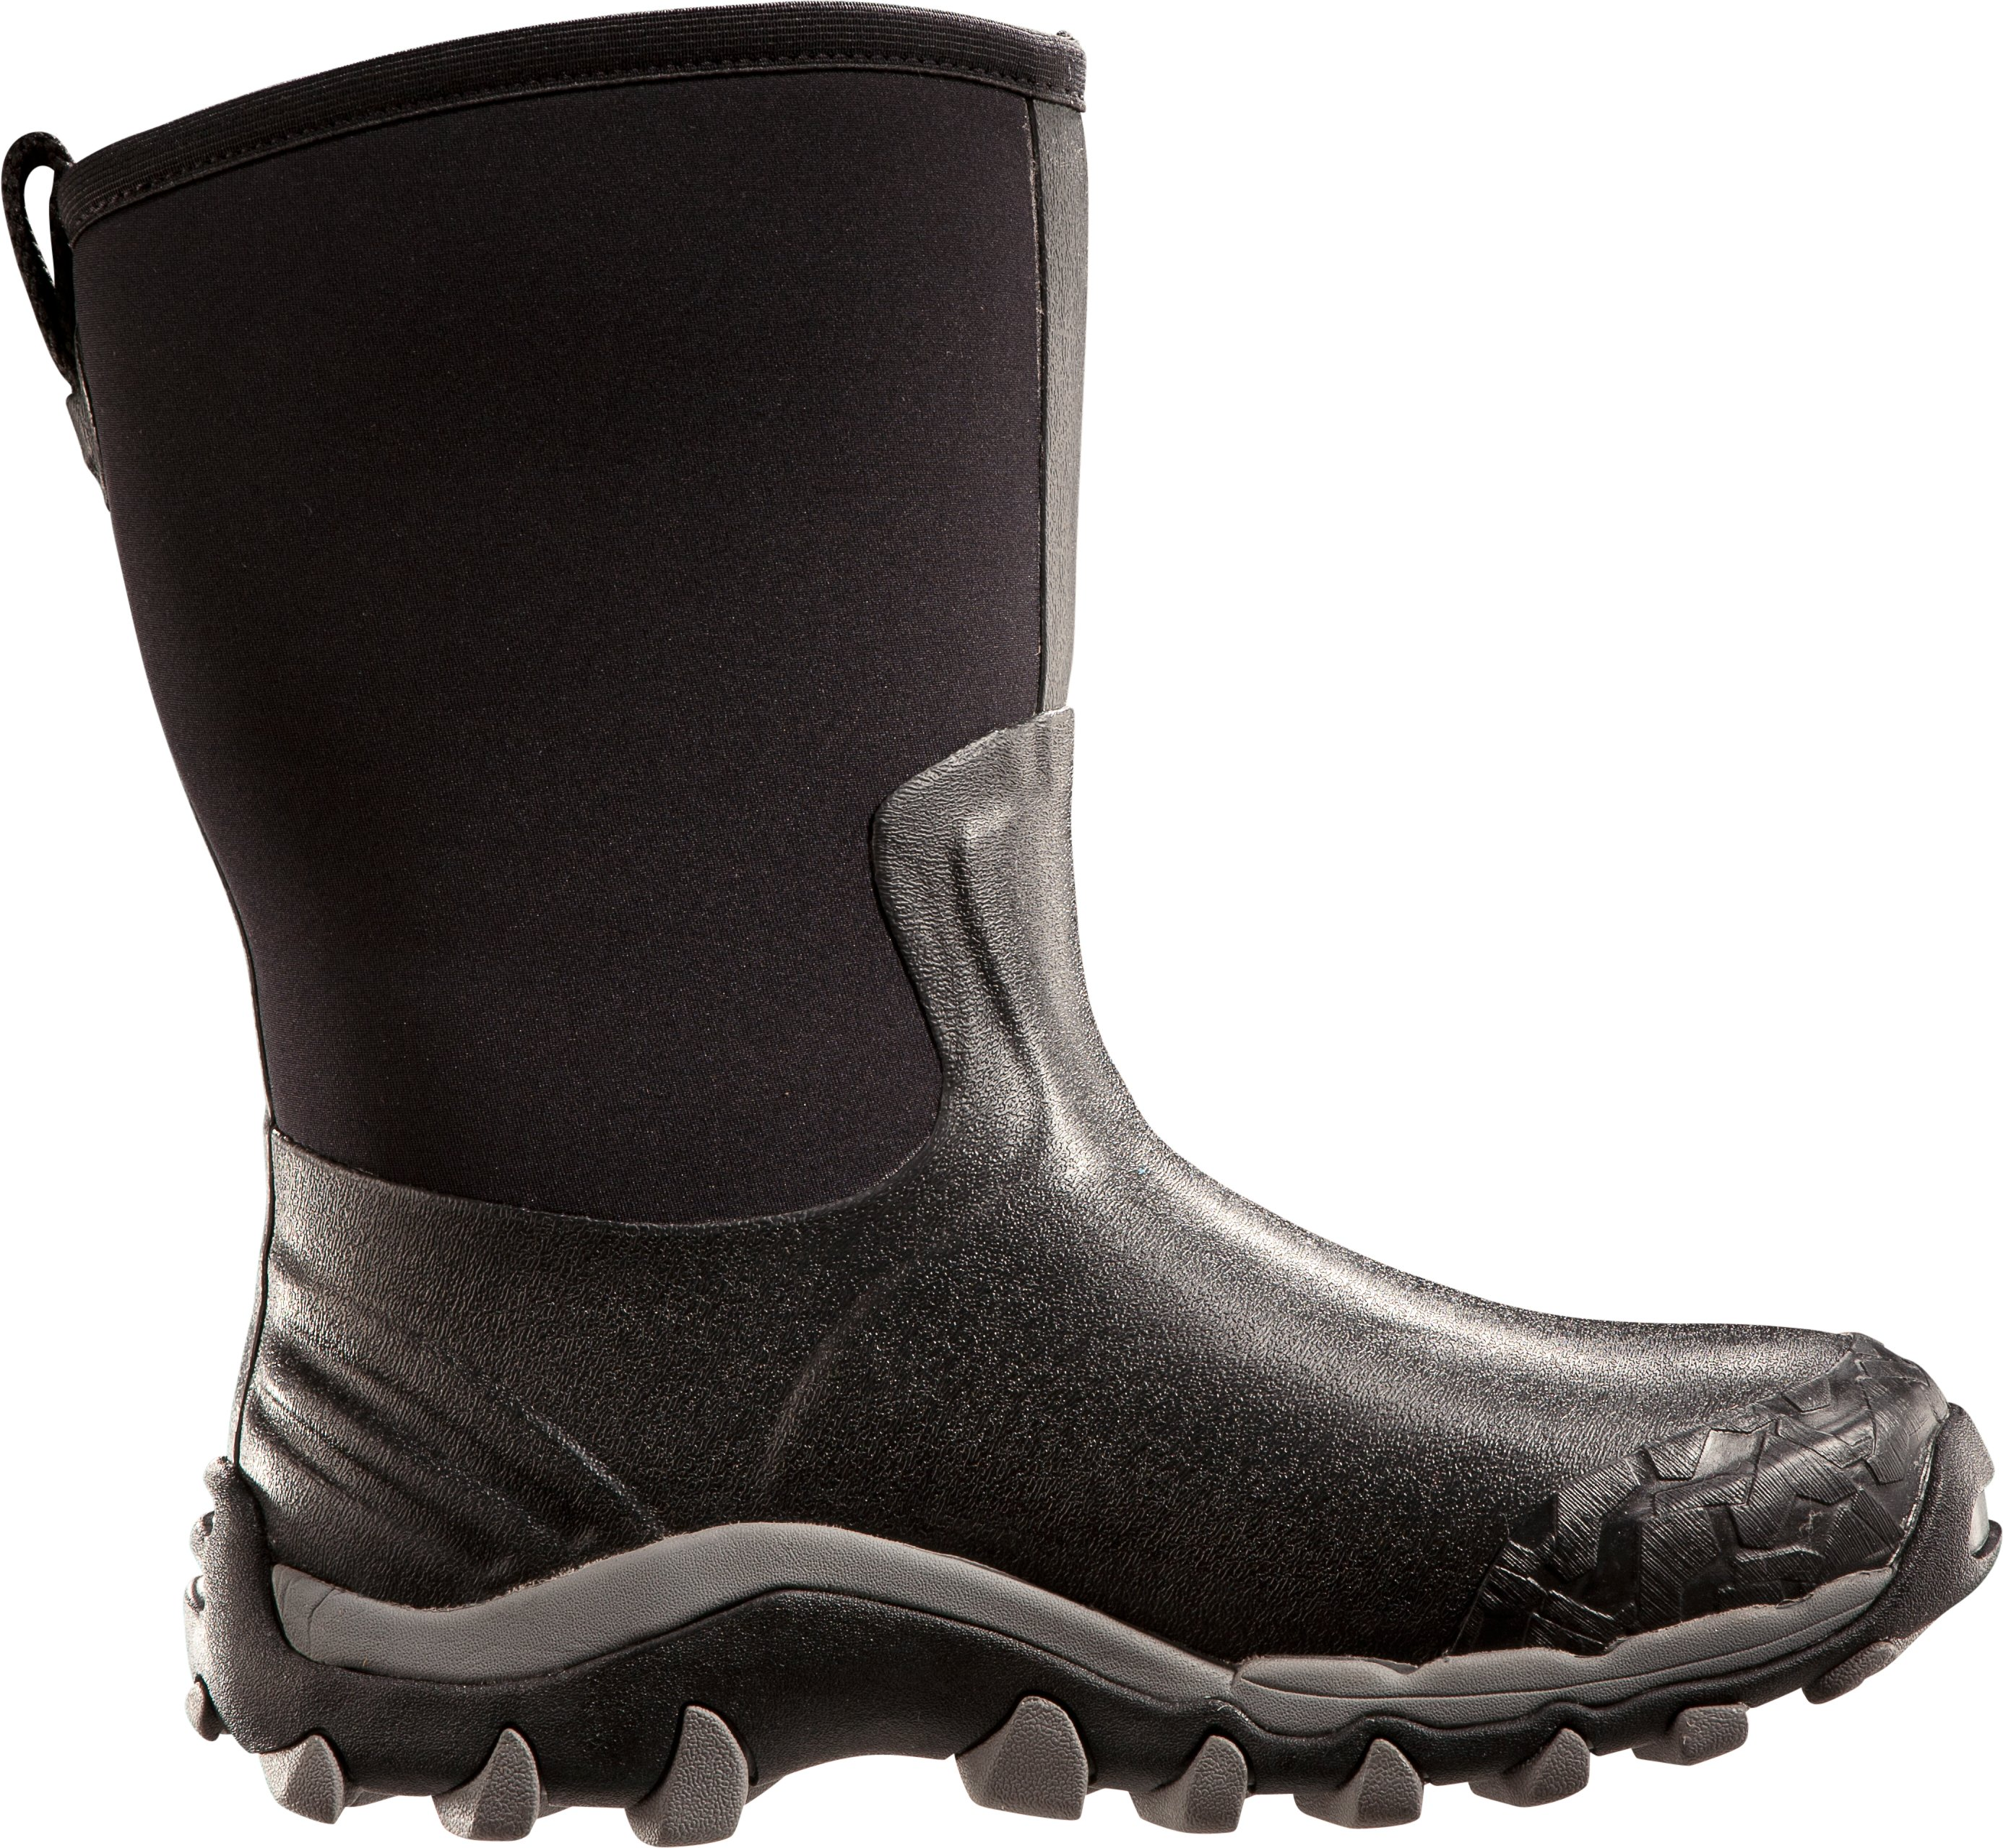 Men's UA H.A.W. Shorty Hunting Boots, Black